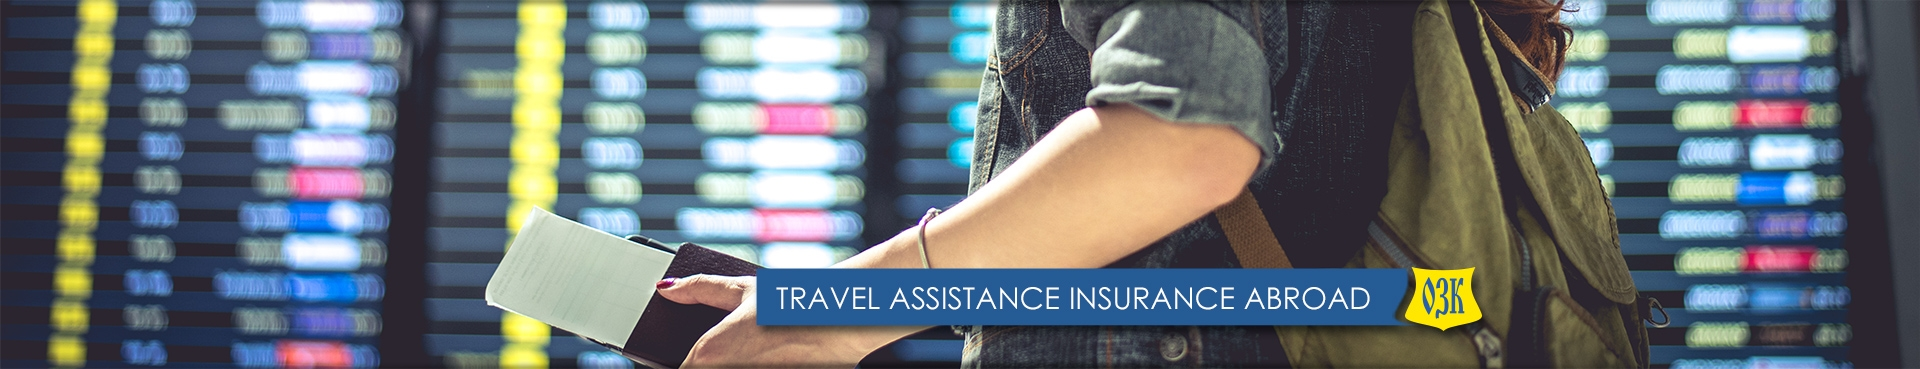 TRAVEL ASSISTANCE INSURANCE ABROAD